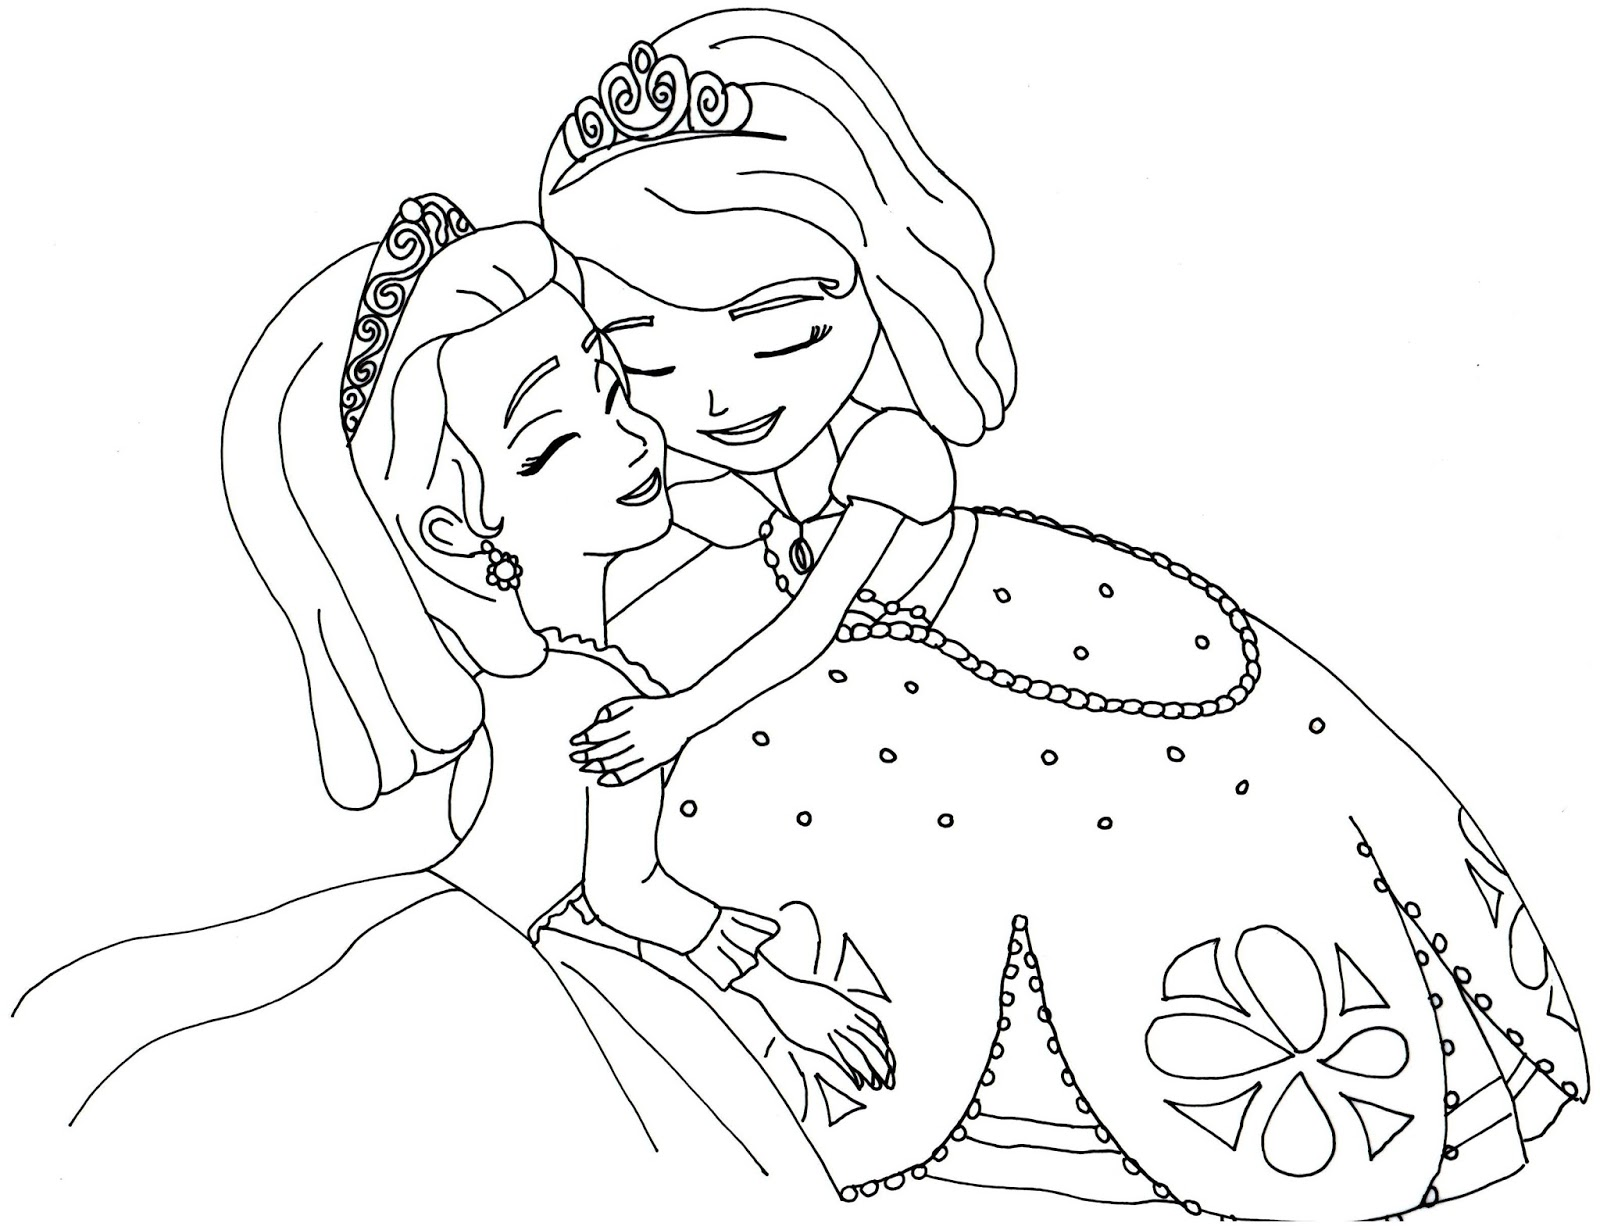 Sofia the first coloring pages sofia and amber hugged for Sofia the princess coloring pages